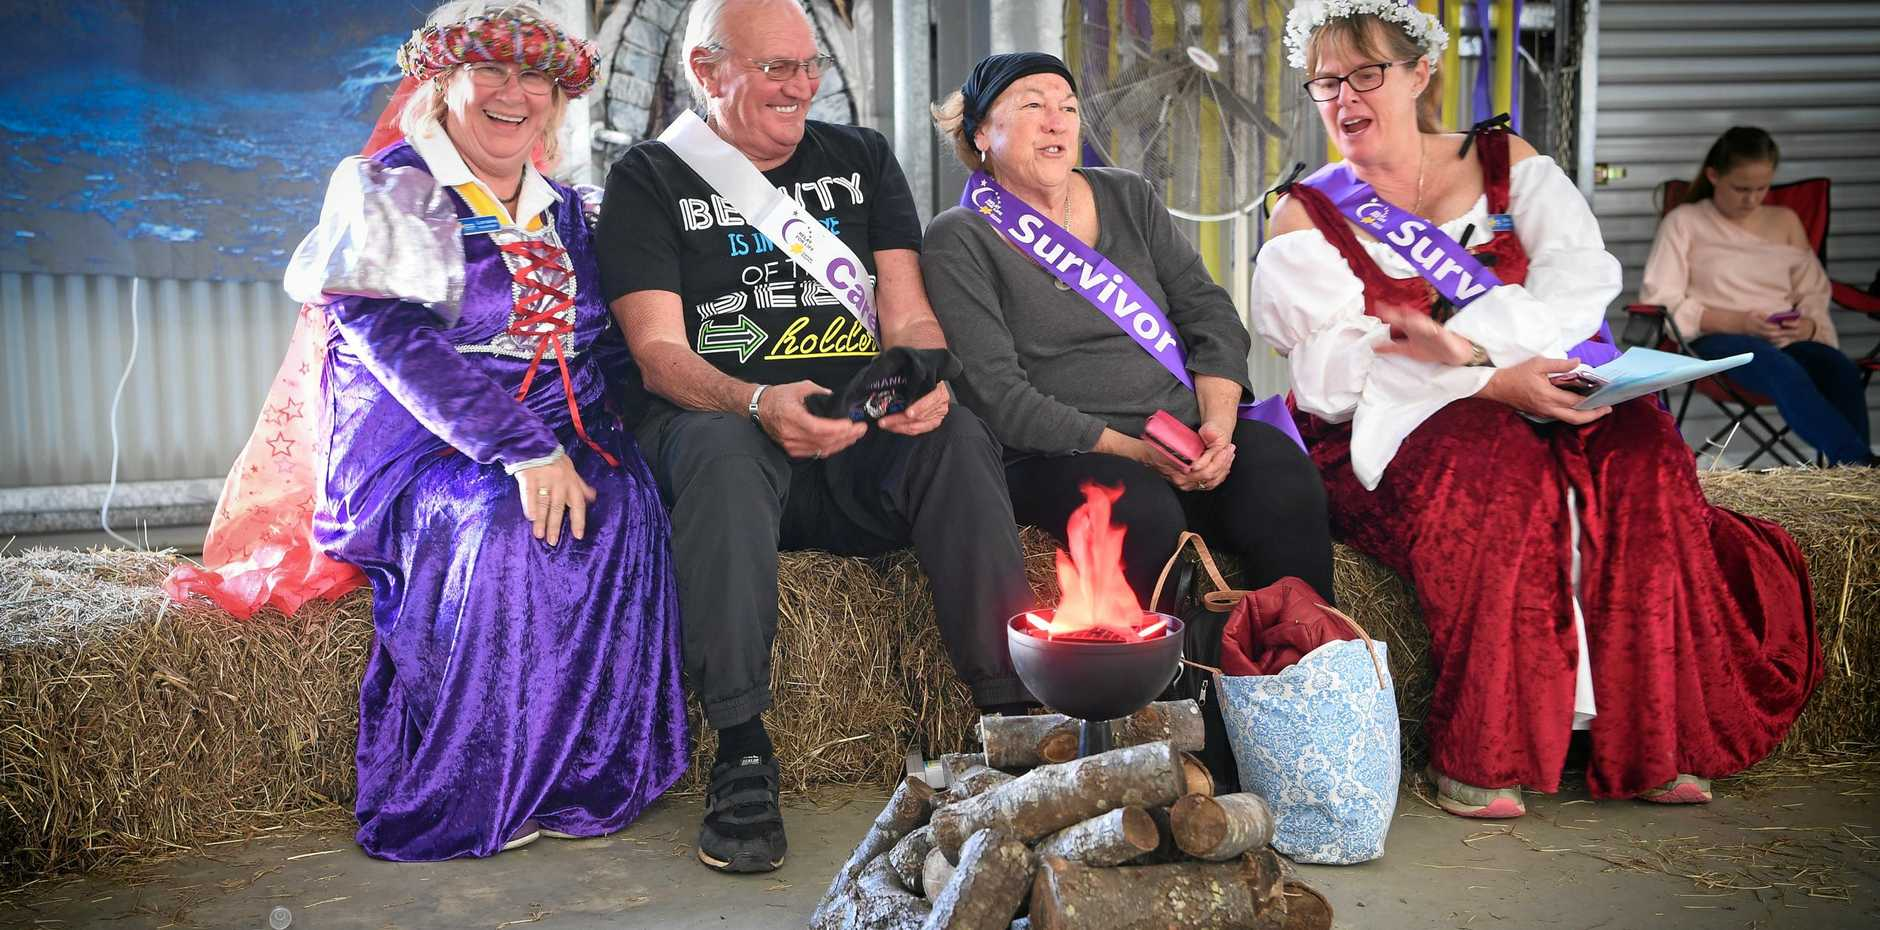 Having a laugh around the camp fire are Lorraine Wratten, Mike and Maggie Diener and Donna Havermann. Maggie is a melanoma survivor as is Donna who, when pregnant, discovered a melanoma for the second time.